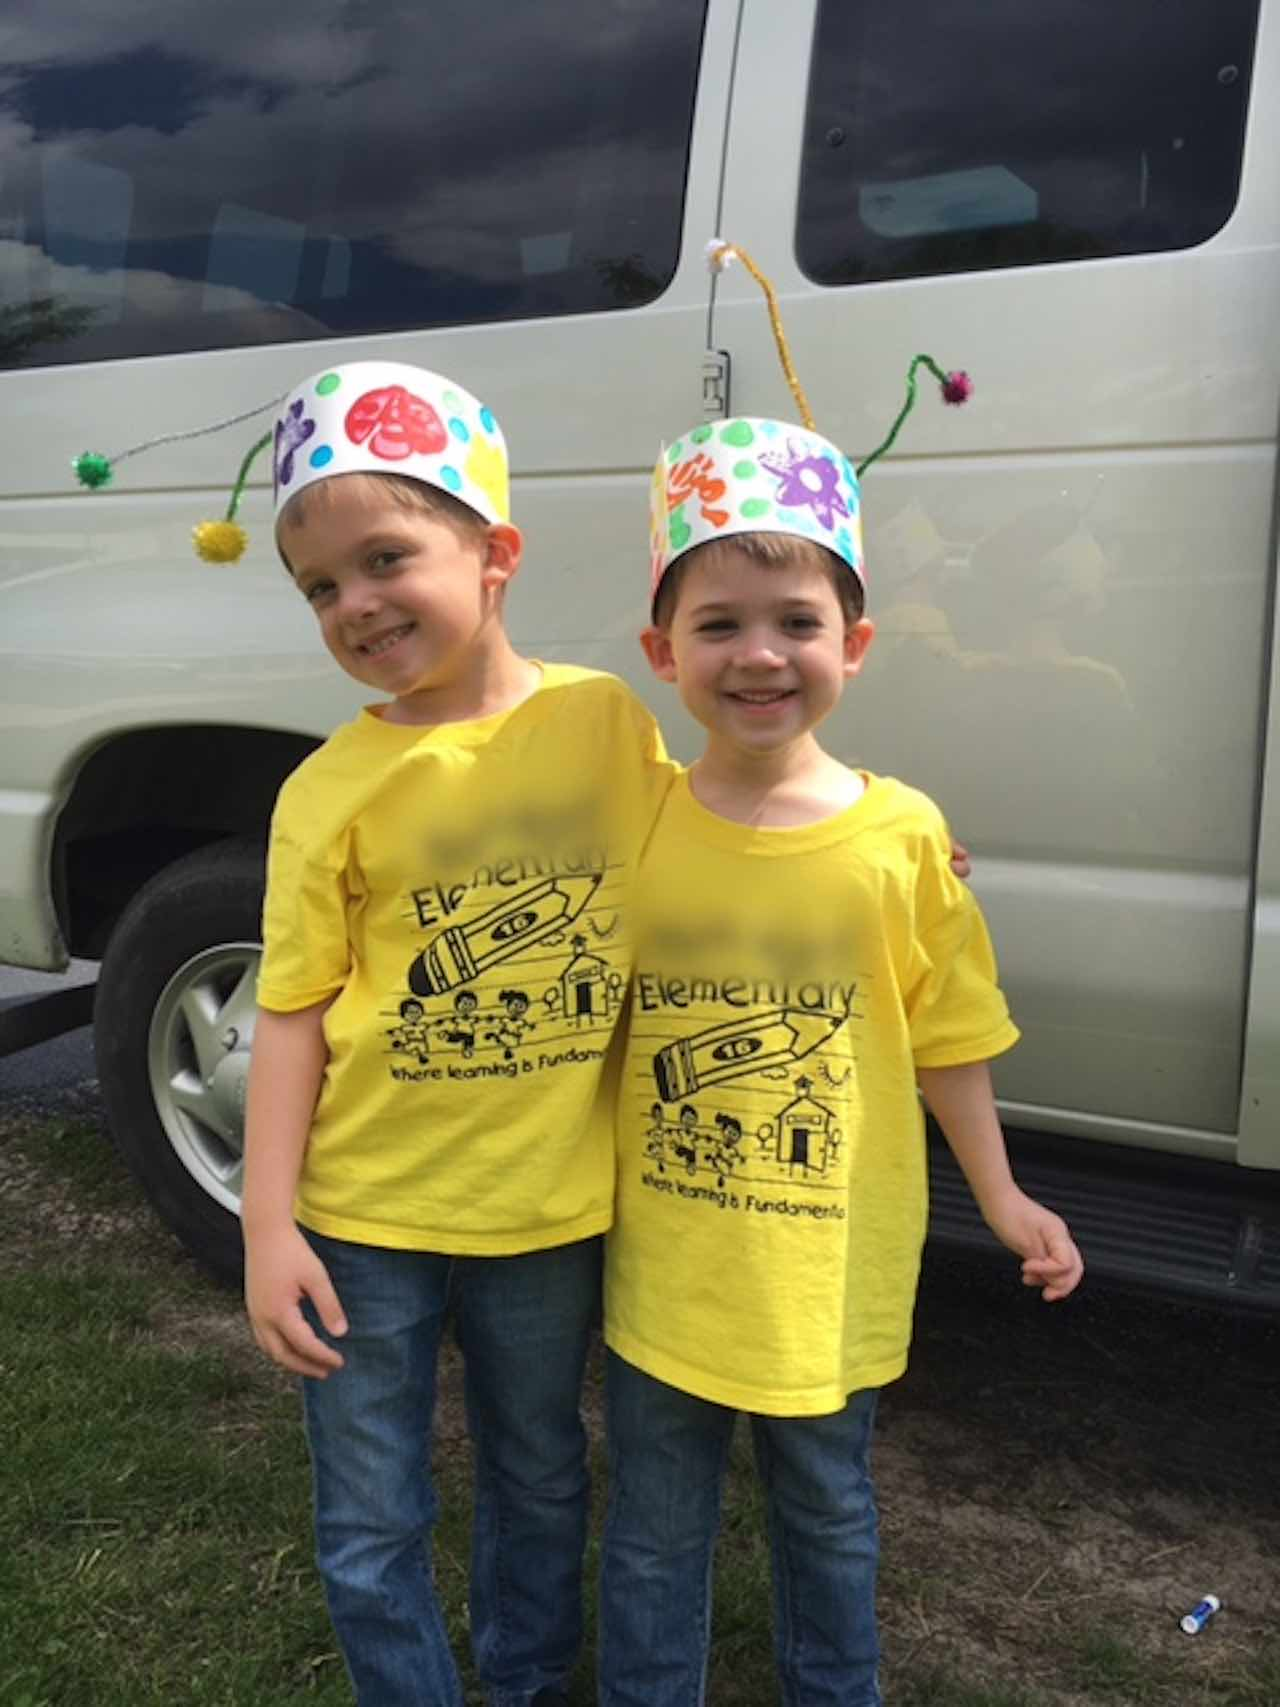 brothers smiling with bug hats on